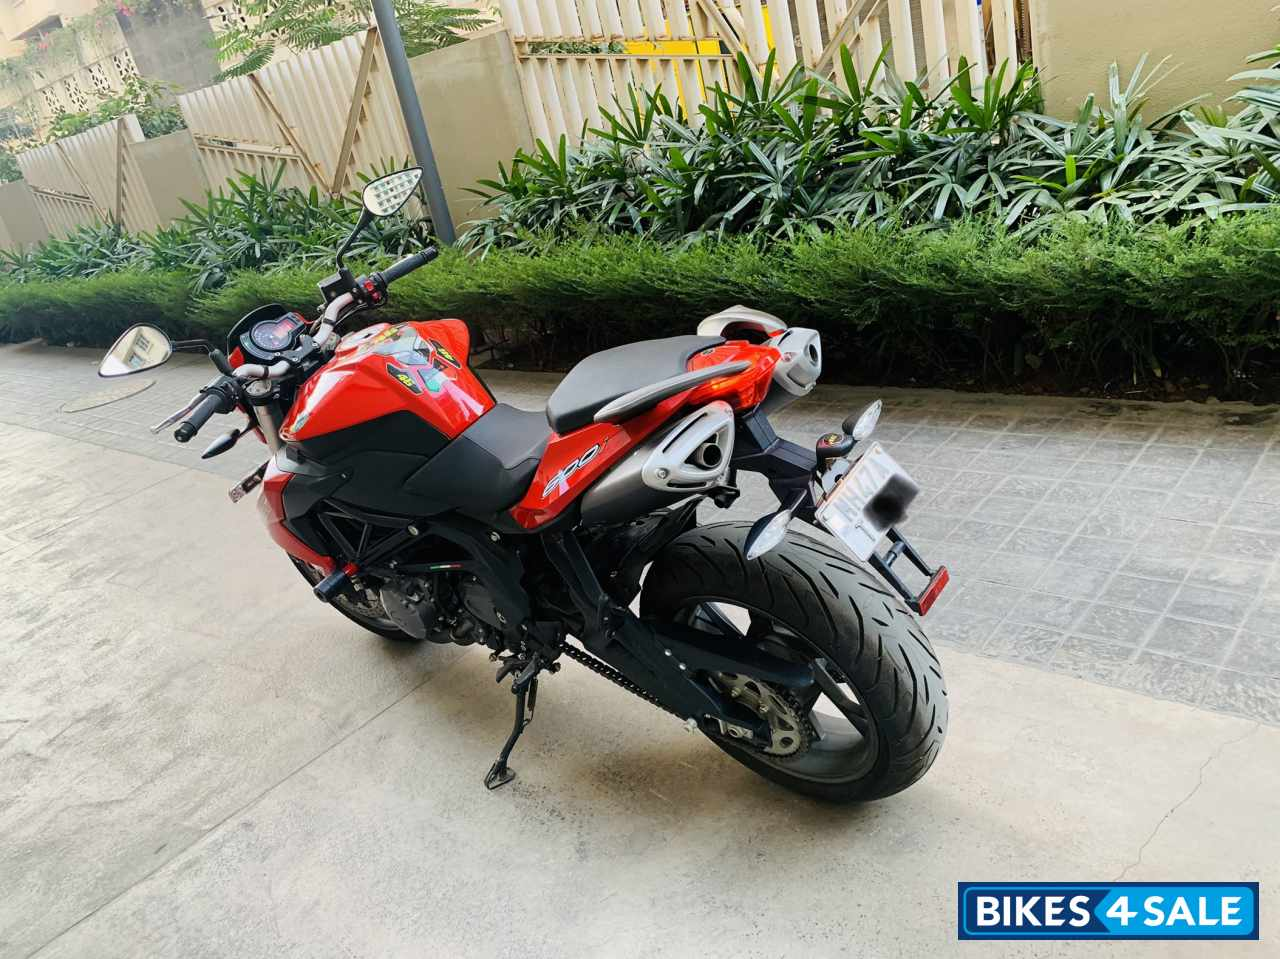 Used 2019 model Benelli TNT 600 i for sale in Hyderabad